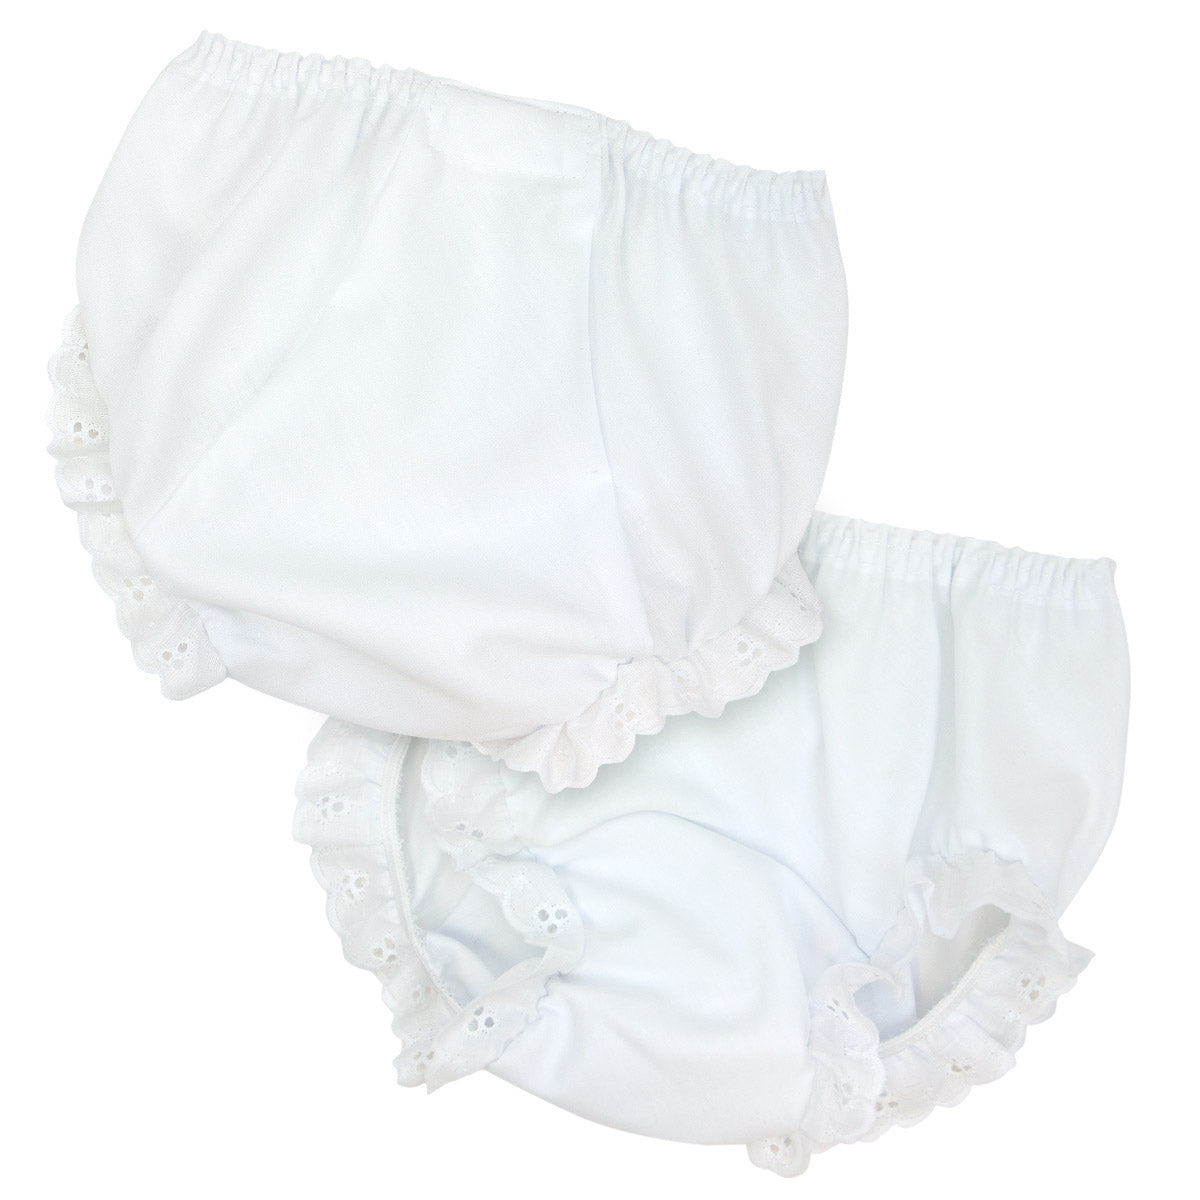 Double Seated Panty with Eyelet Trim